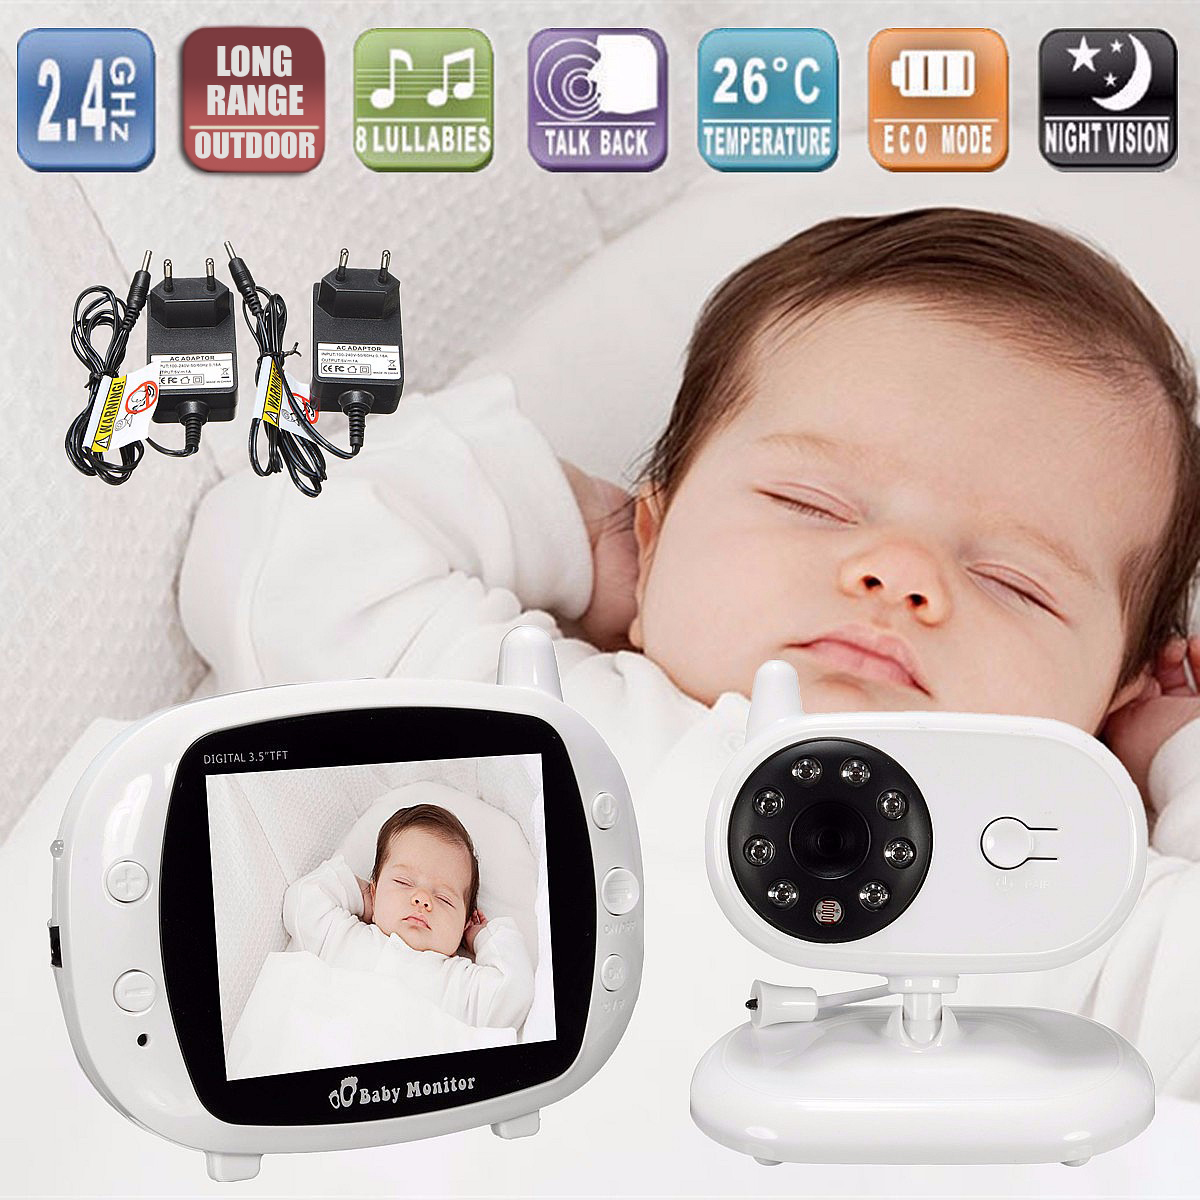 2.4G Wireless Digital 3.5 LCD Baby Monitor Wifi Camera Audio Talk Video Night Vision High Resolution Home Security bonlor 2 4g wireless digital 3 5 lcd baby monitor camera audio talk video night vision high resolution home security